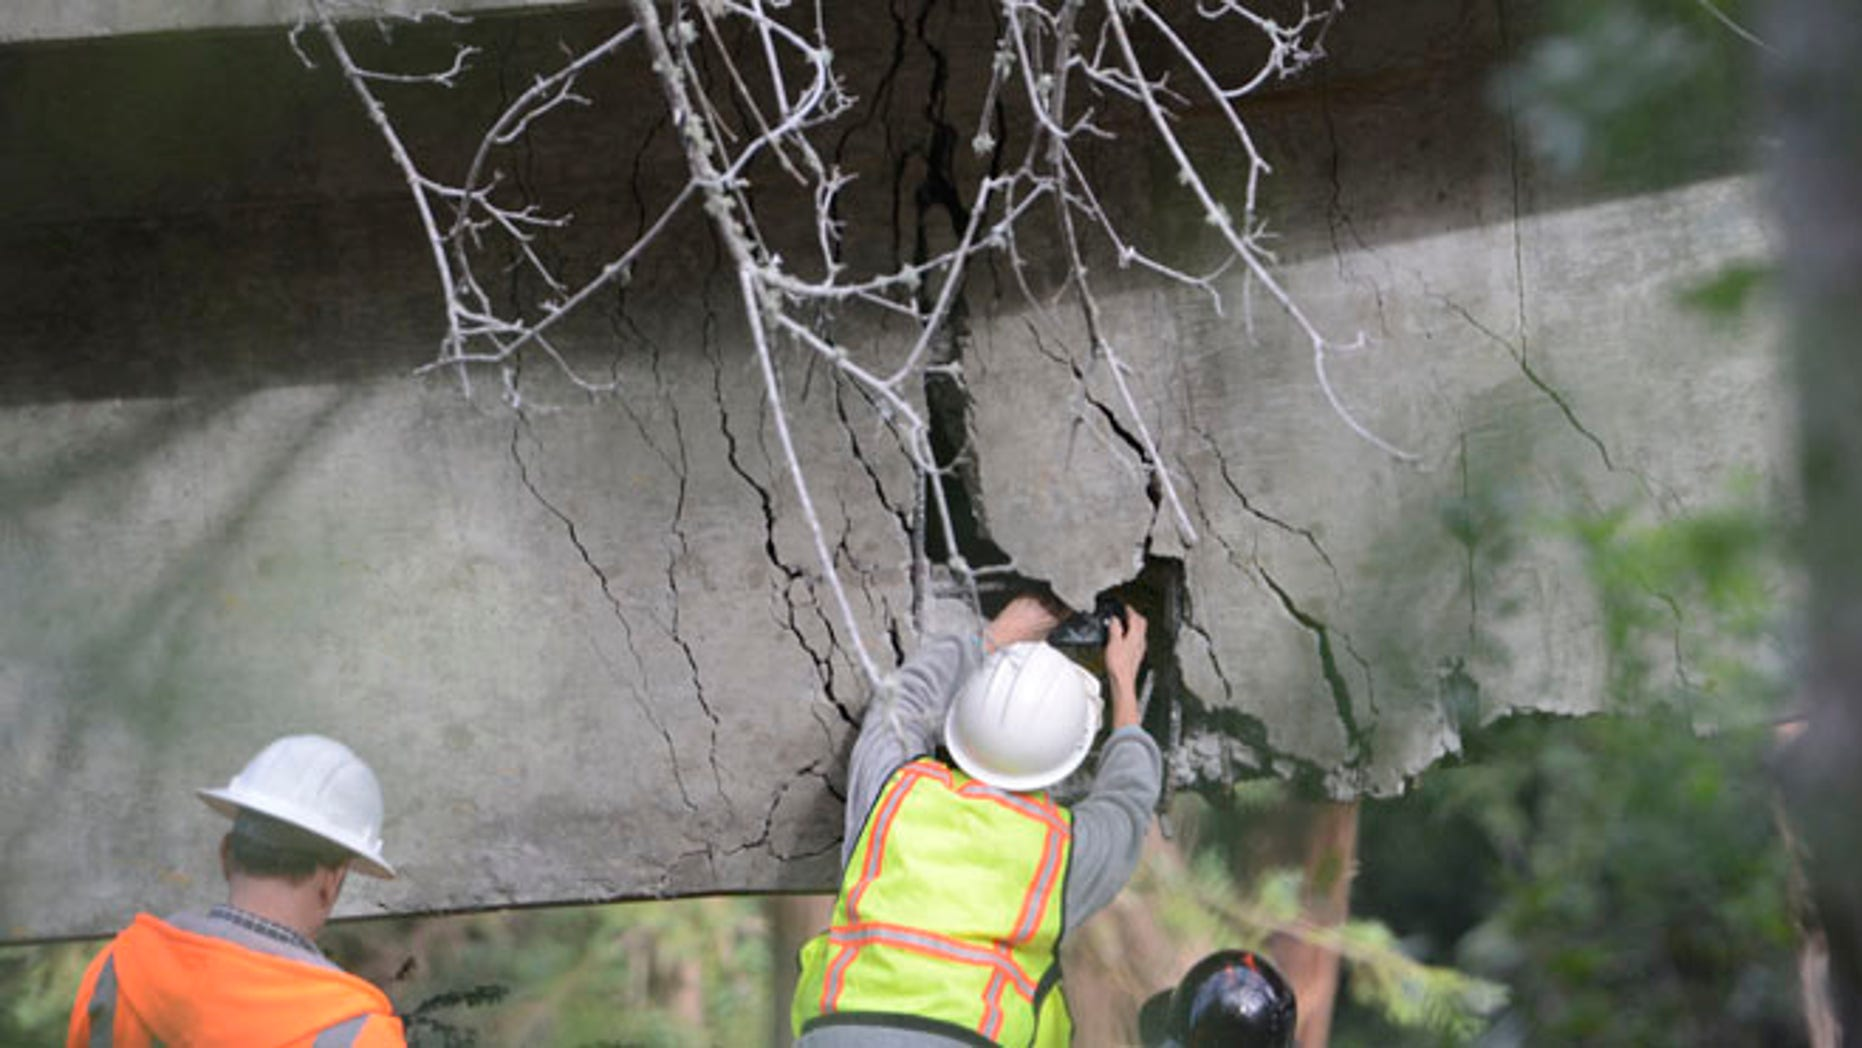 On the rain-soaked coast in Central California, the Pfeiffer Canyon Bridge has crumbled beyond repair, blocking passage on Highway 1 in Big Sur.